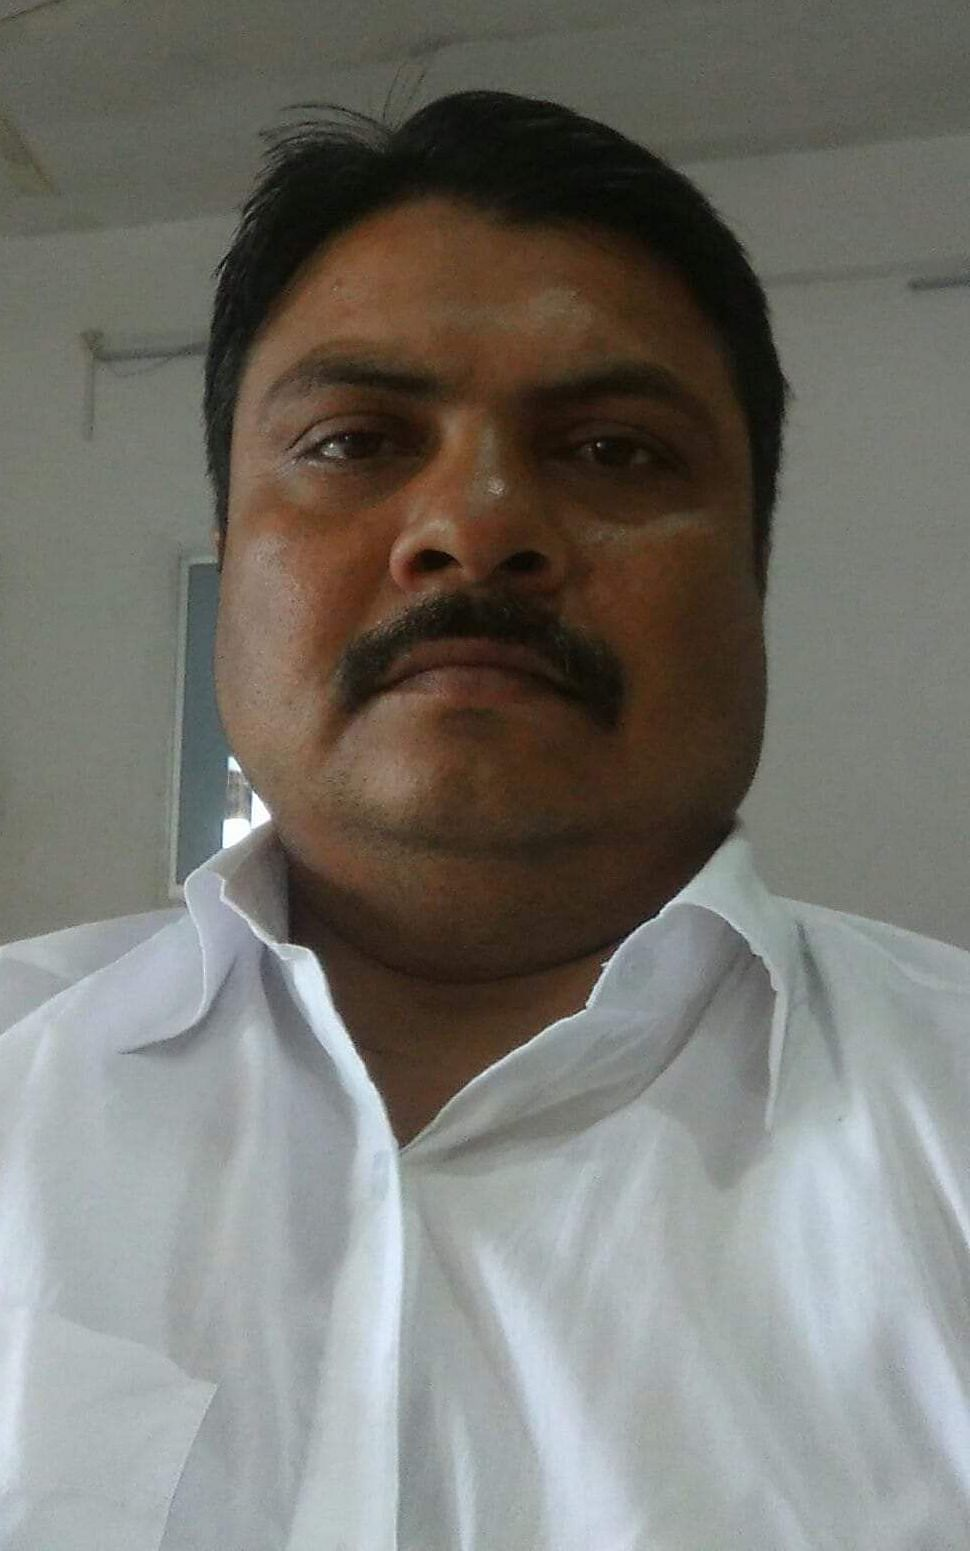 Asif Chandan, his brother Shahid told us, was growing in prominence as a leader in the district.